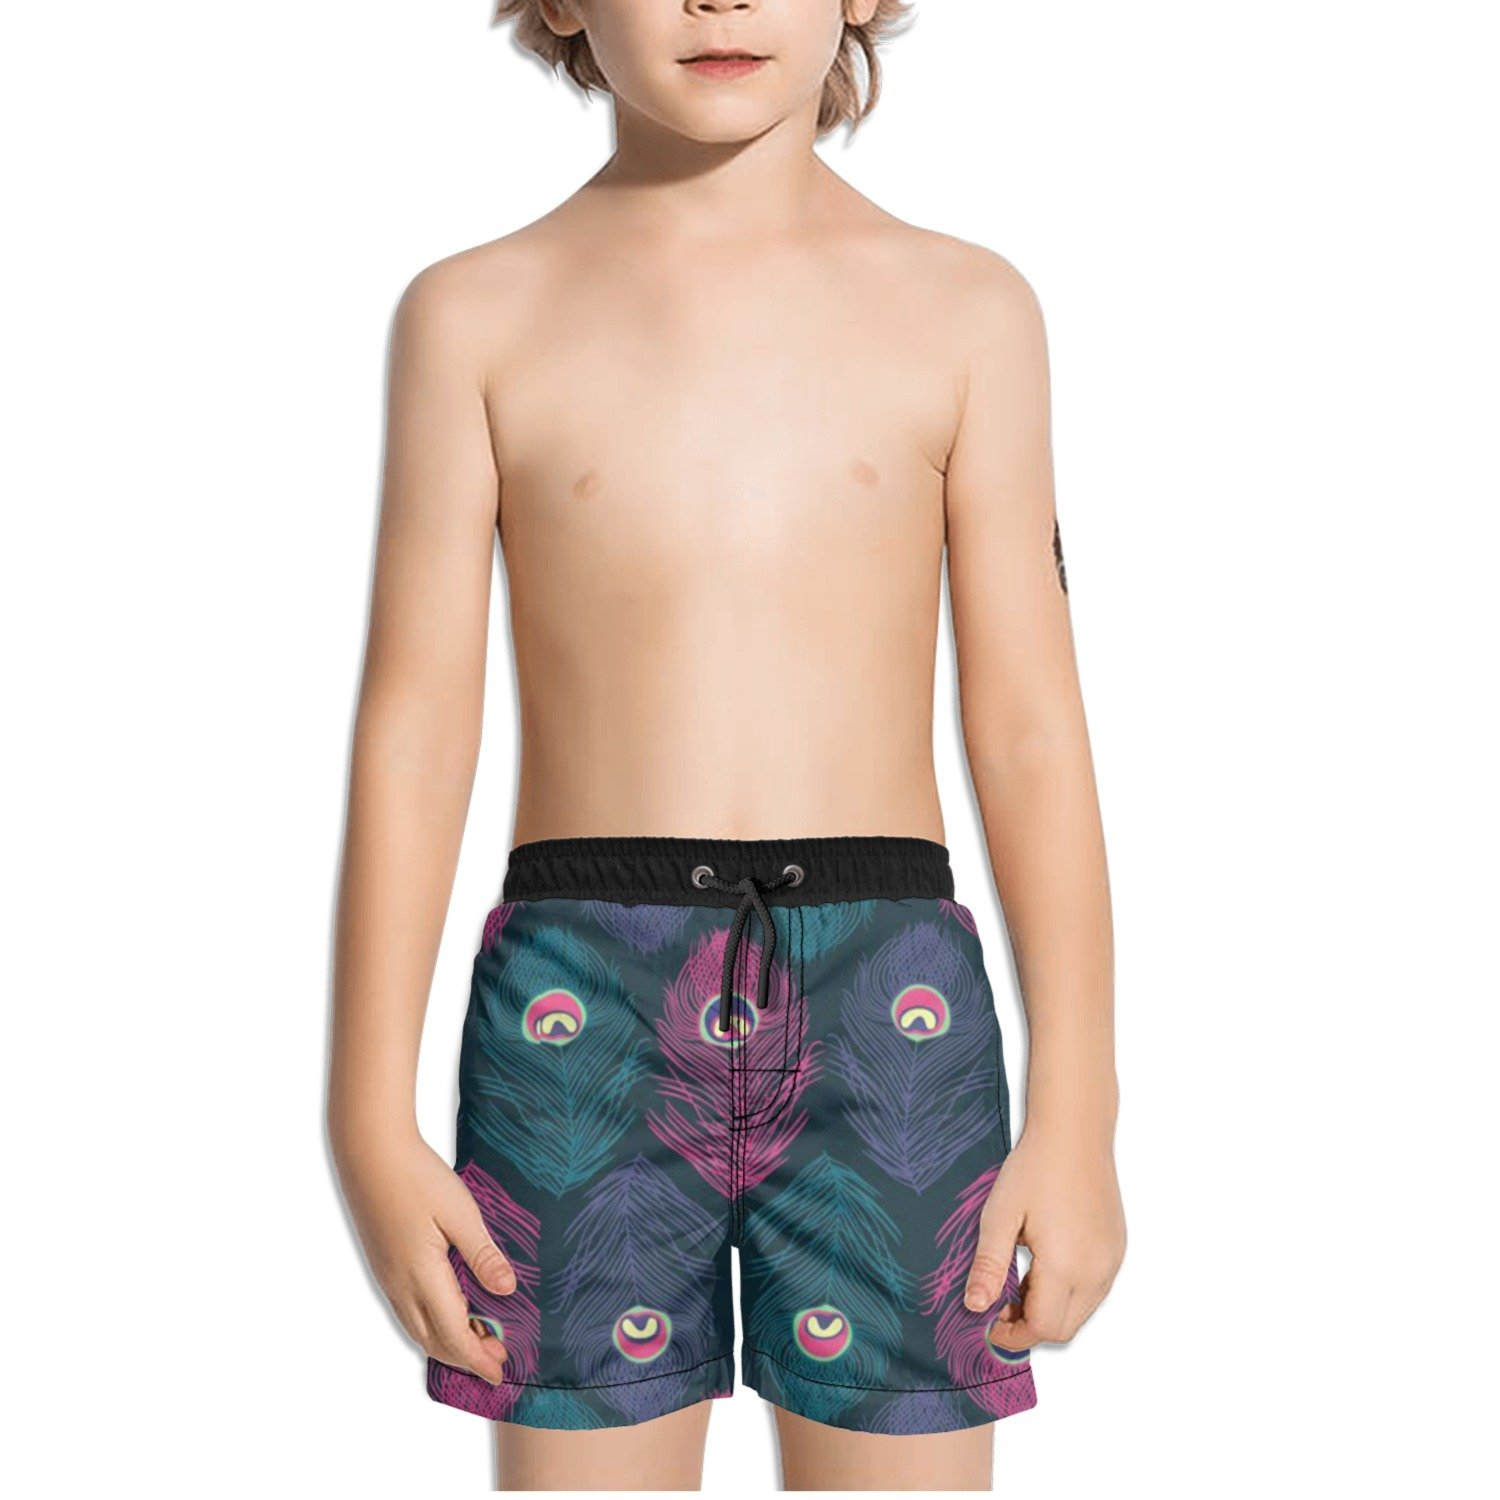 Ouxioaz Boys Swim Trunk Peacock Beach Board Shorts